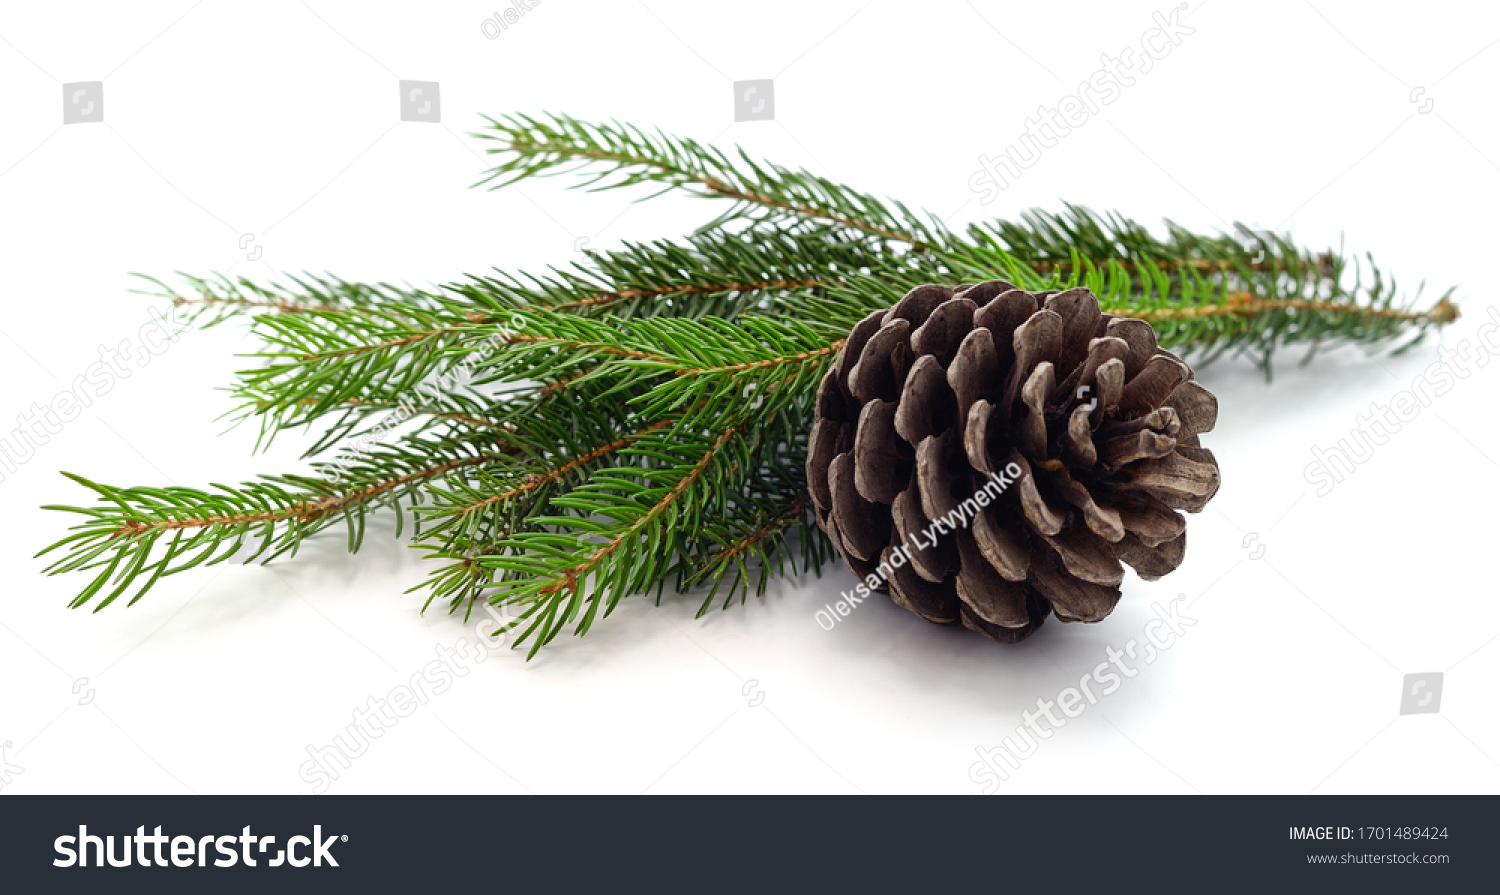 Cones and christmas tree isolated on a white background. #1701489424